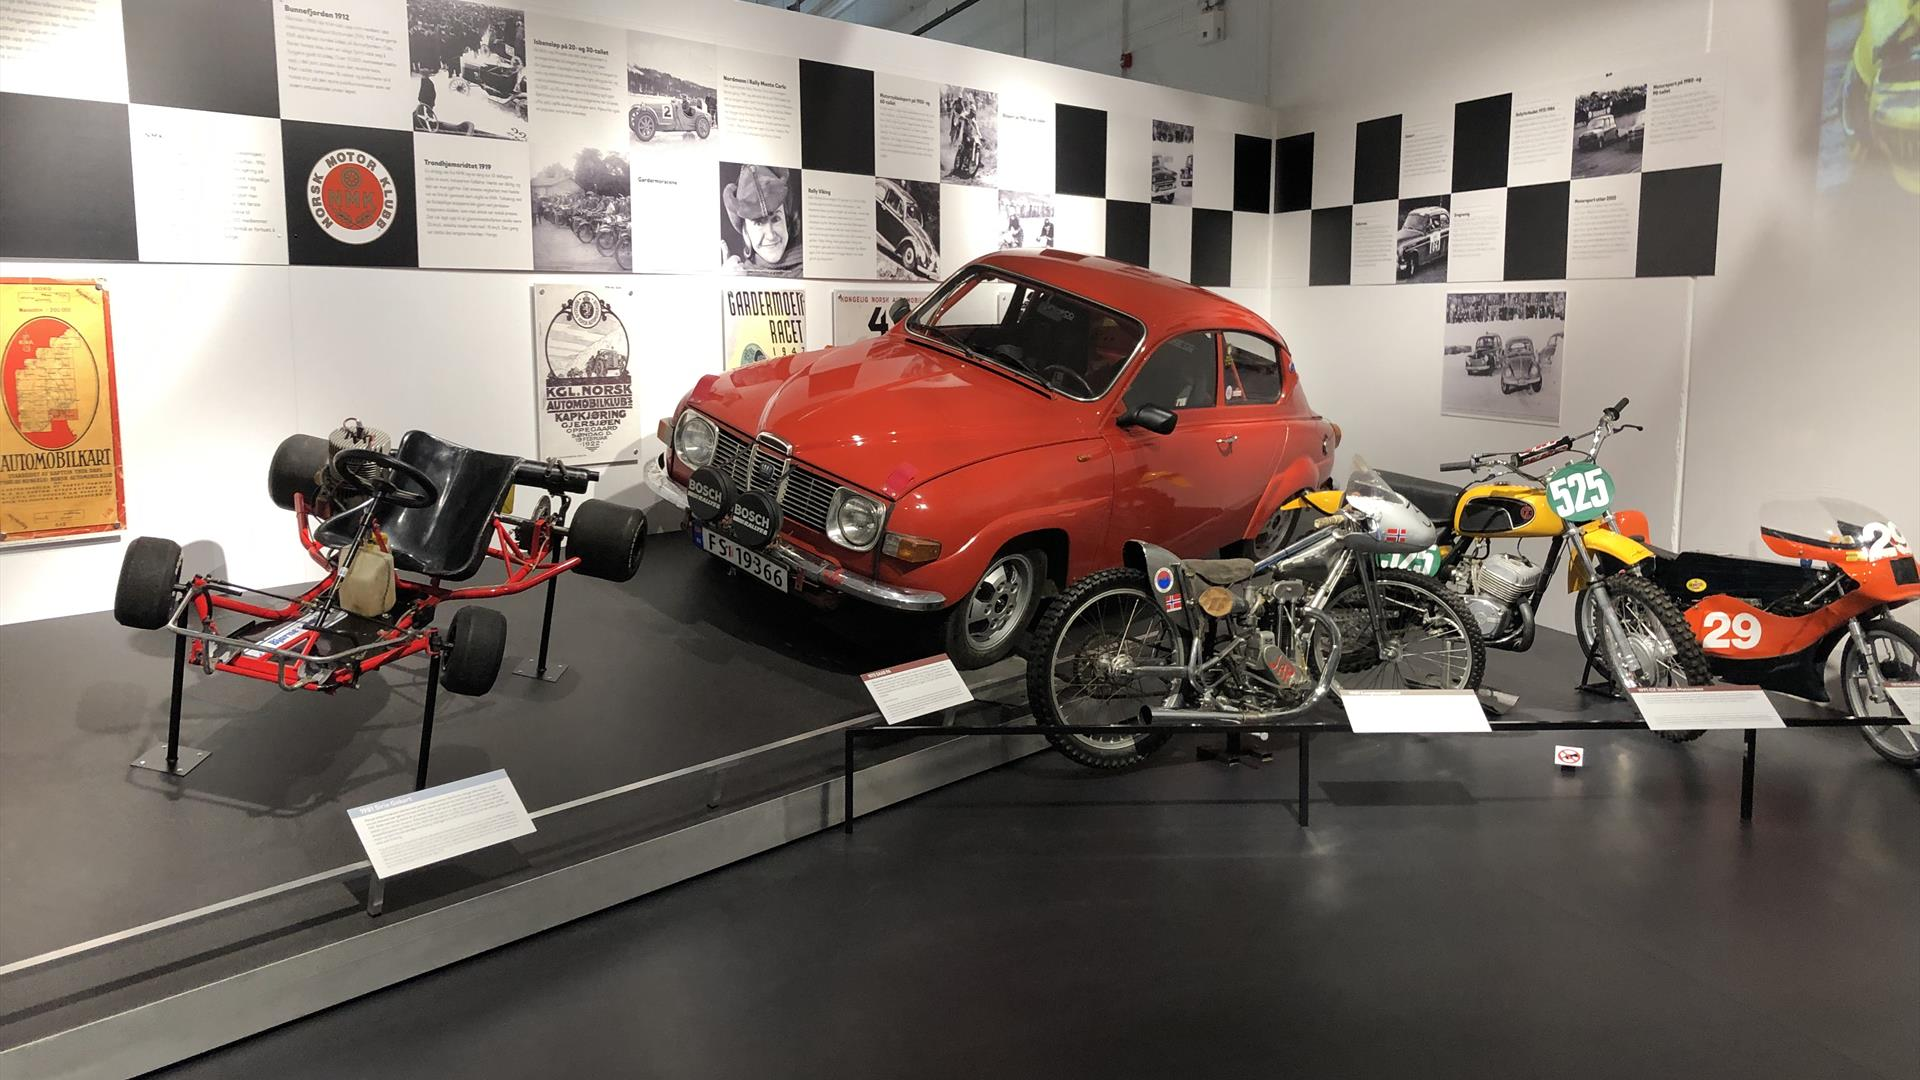 From the exhibition at Norwegian Vehicle Museum